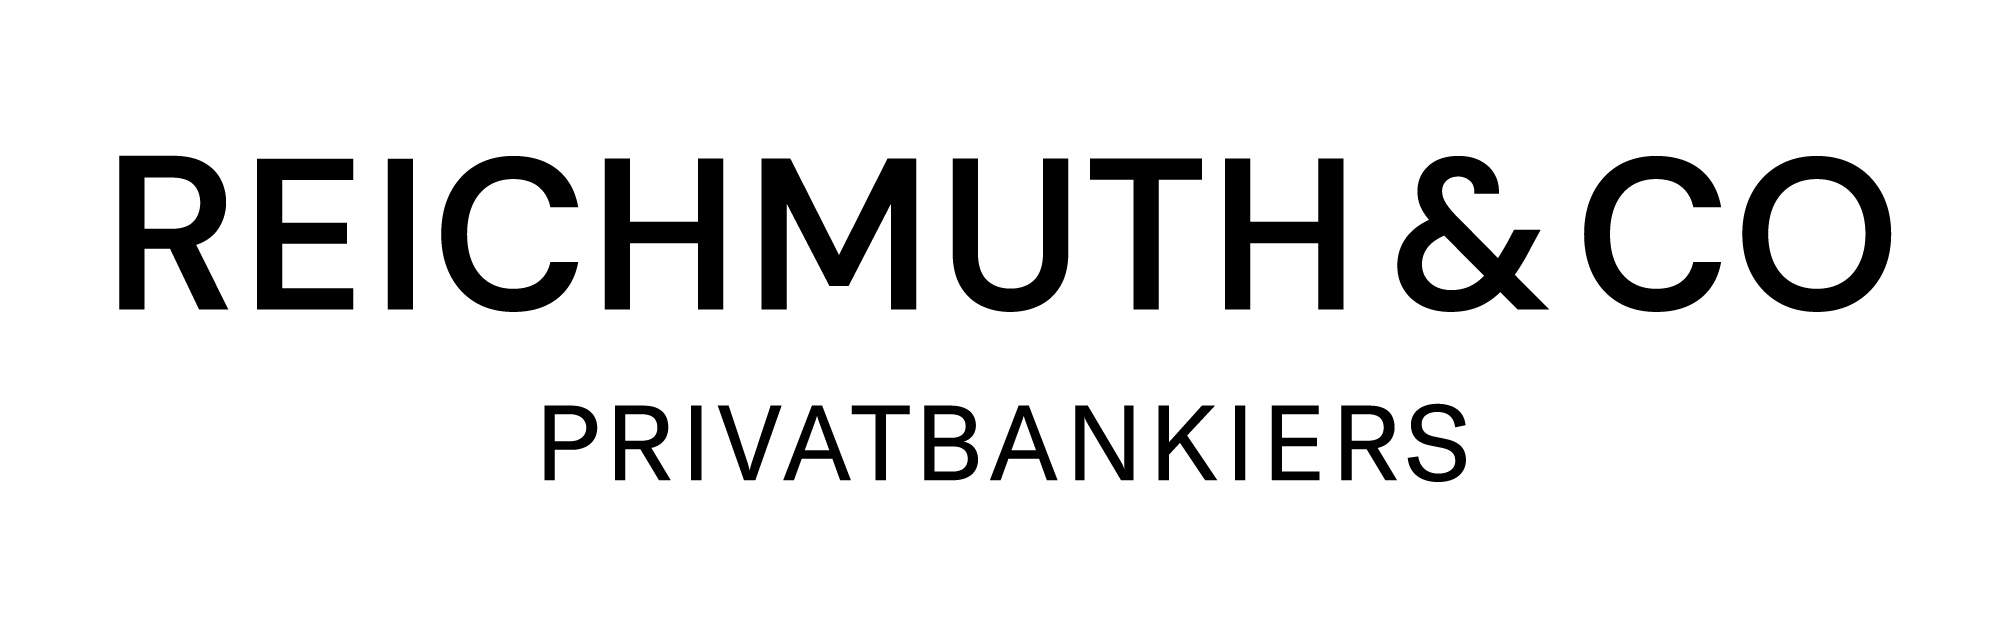 SAMBA Investment Club with the Partner with Unlimited Liability, Reichmuth & Co Privatbankiers